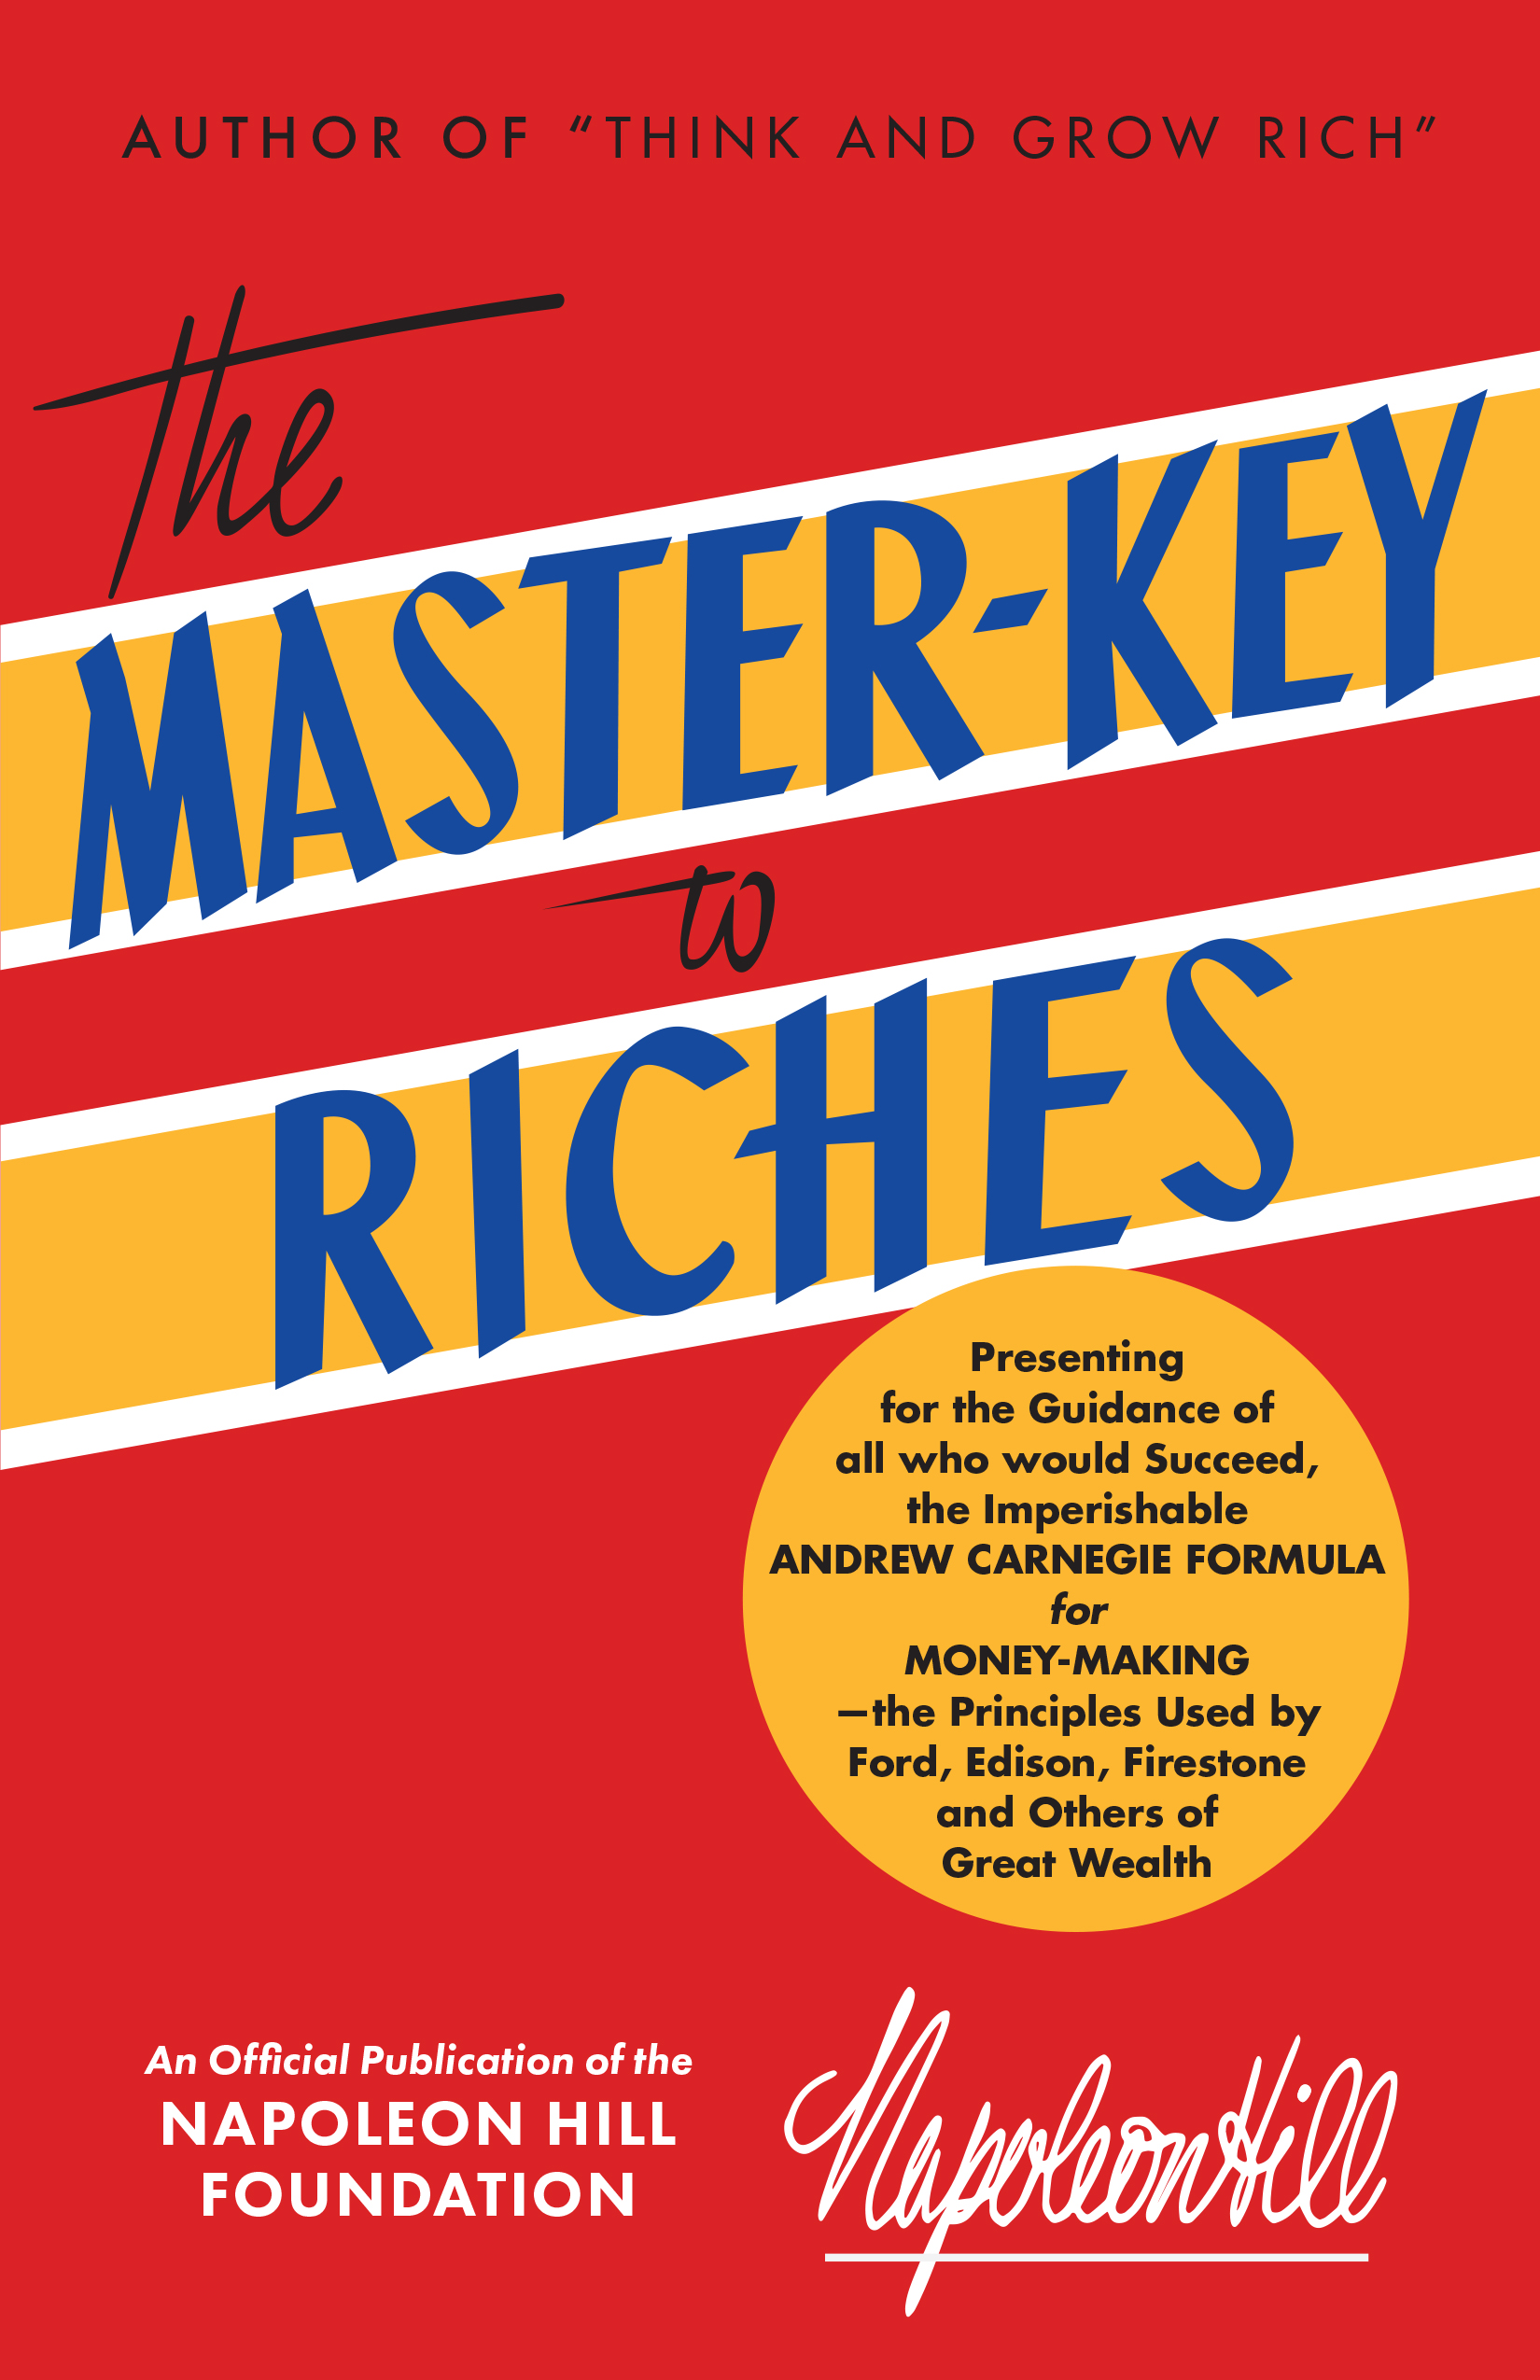 The_Master-Key_to_Riches.jpg